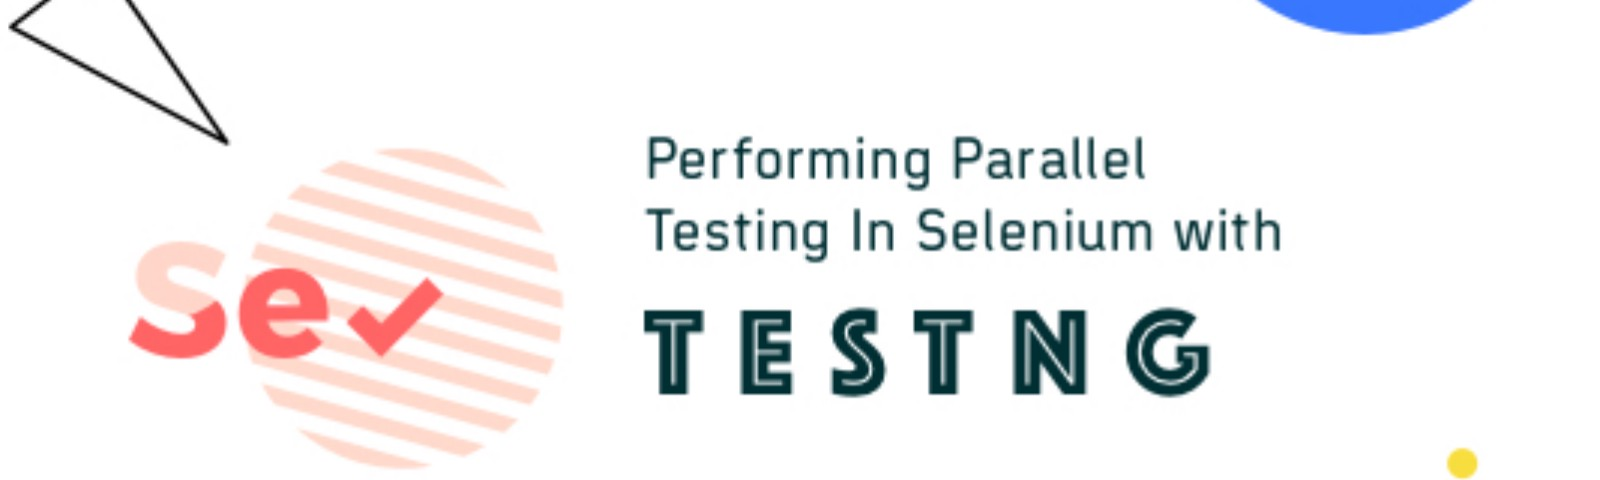 Faster Parallel Testing In Selenium With TestNG   LambdaTest